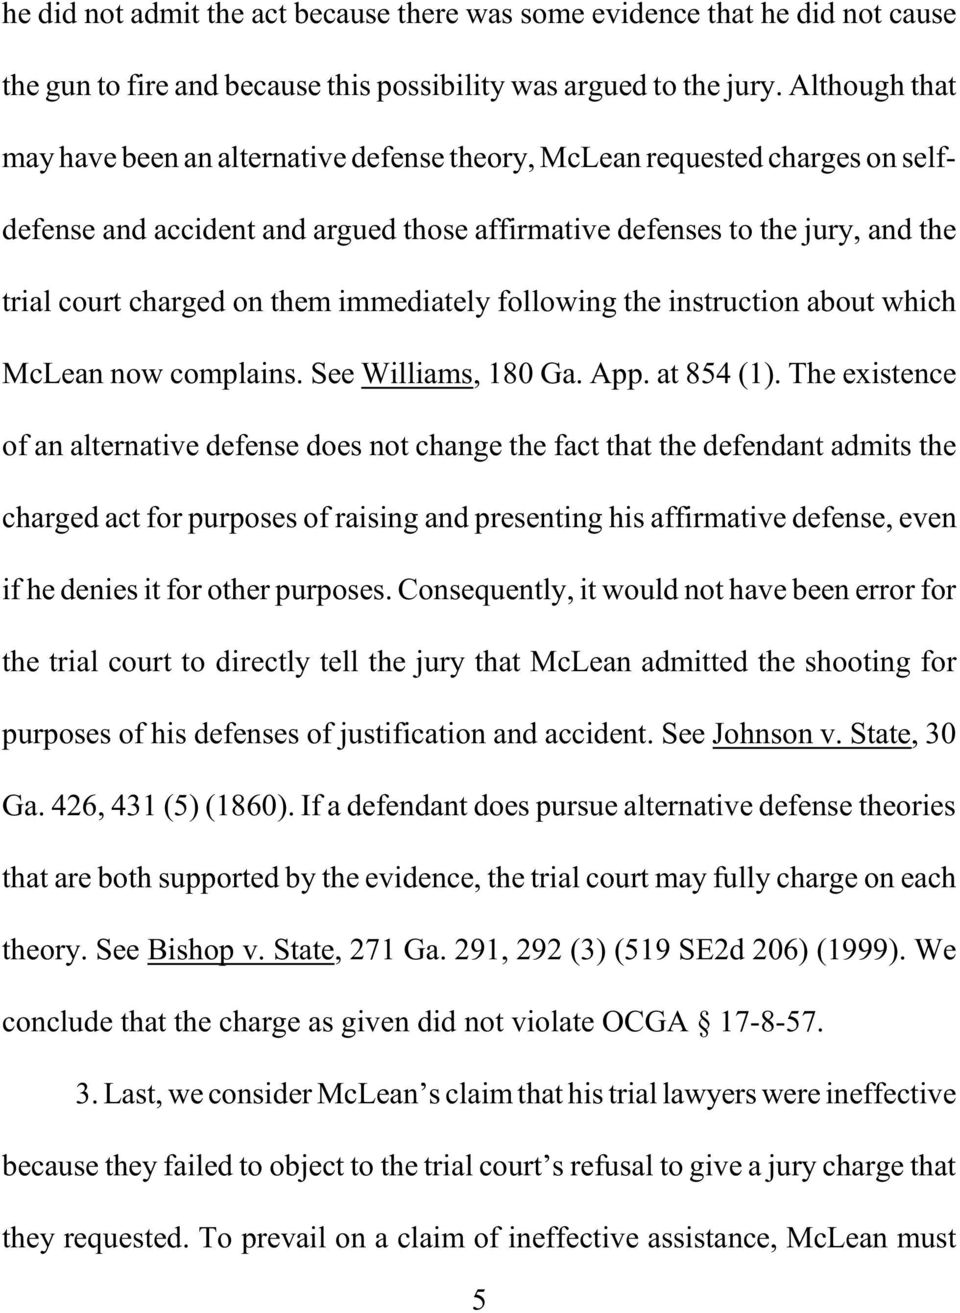 immediately following the instruction about which McLean now complains. See Williams, 180 Ga. App. at 854 (1).